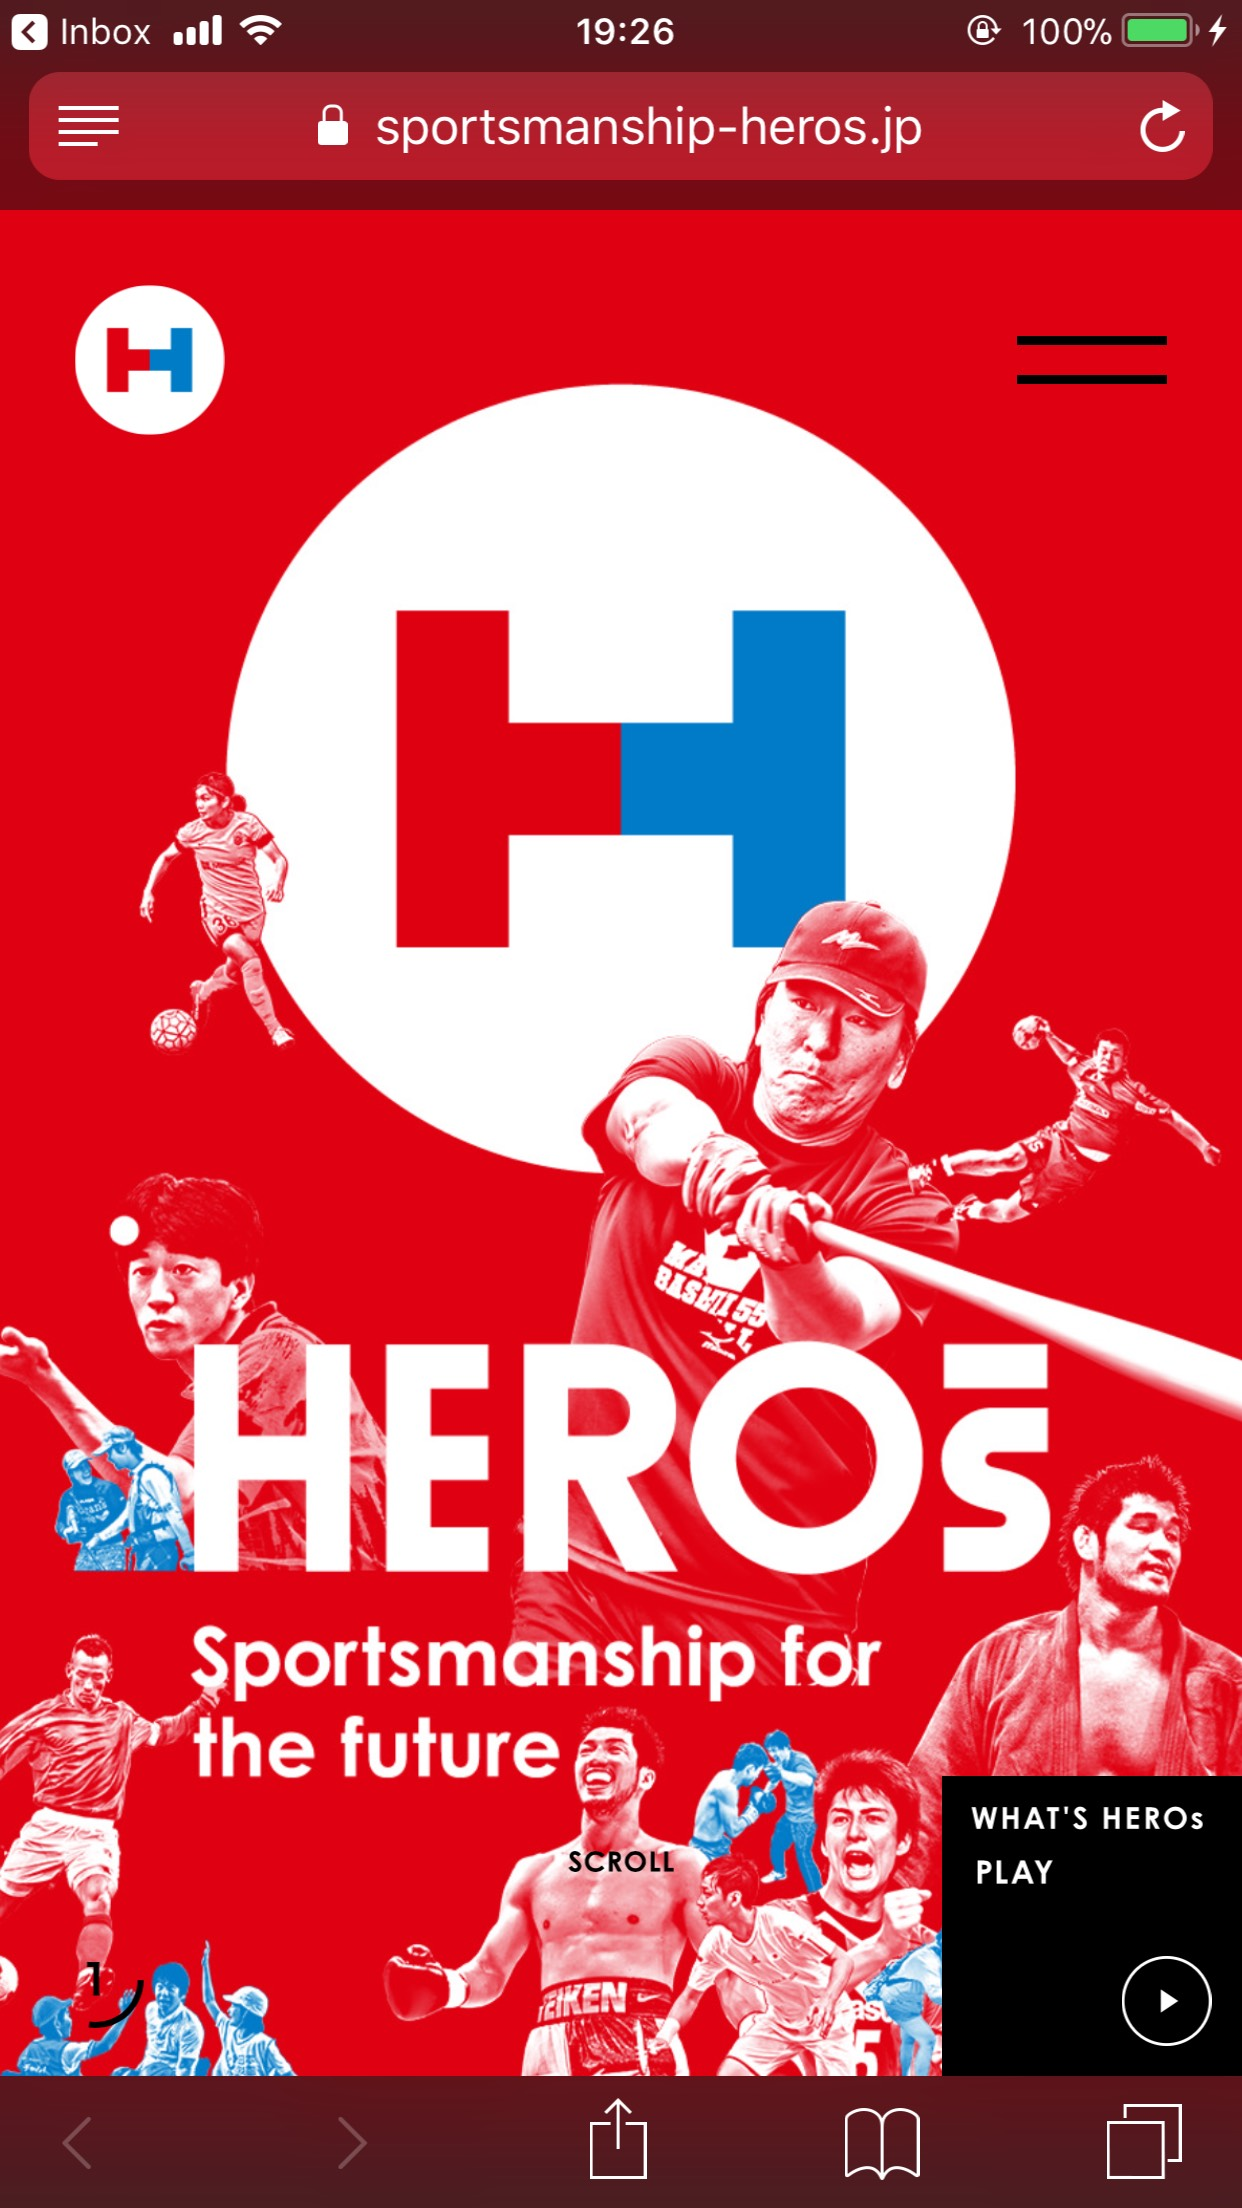 HEROs - Sportsmanship for the future -